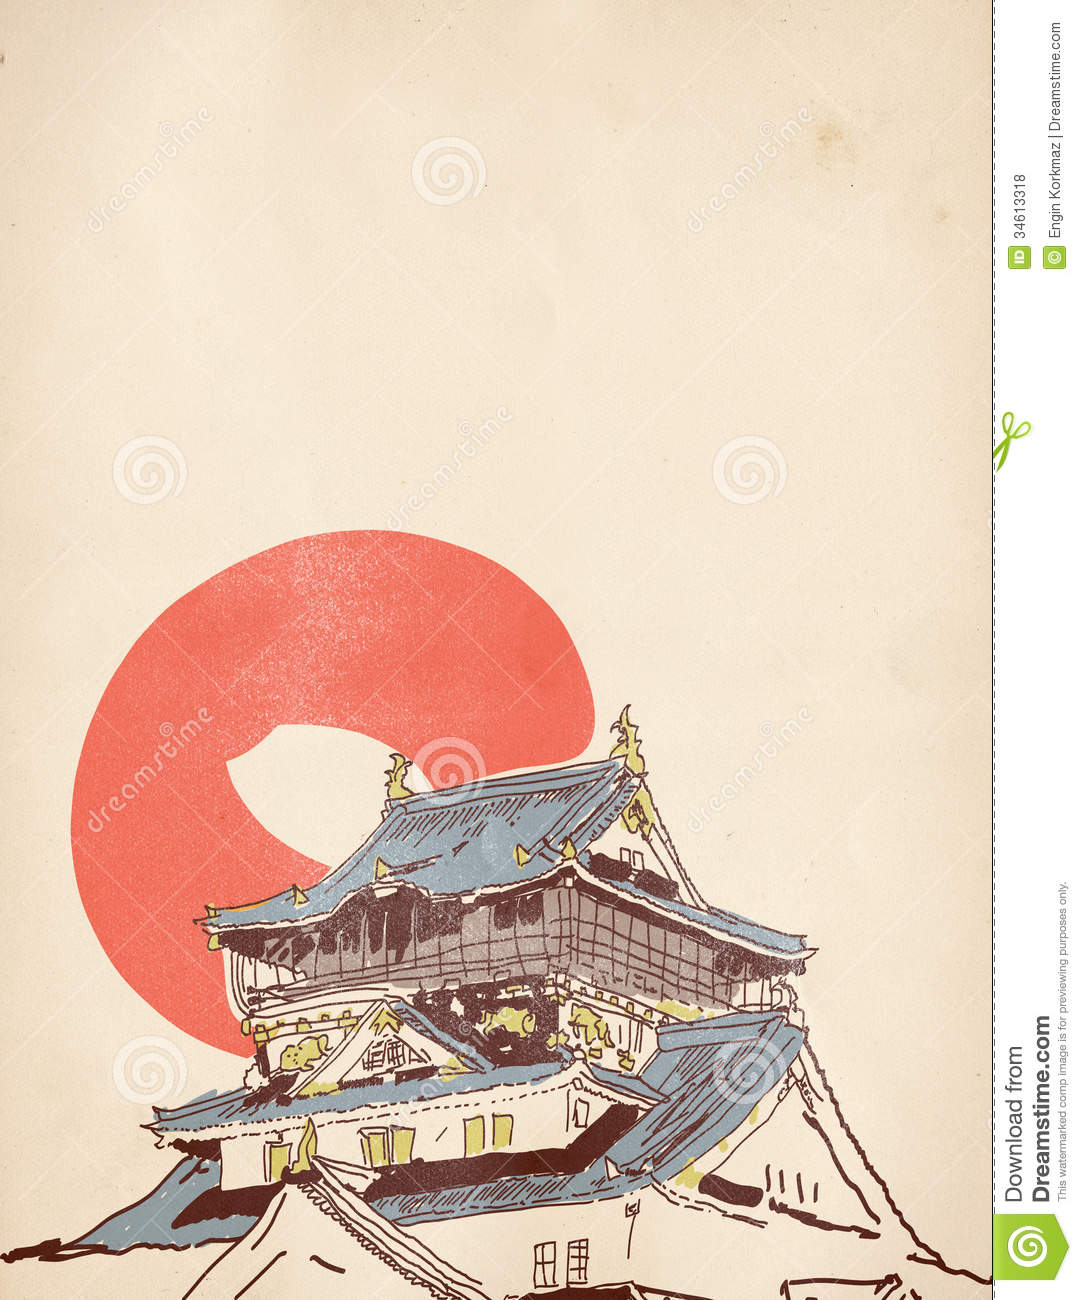 Traditional Japanese House Plans Dessin Japonais De Maison Photos Libres De Droits Image